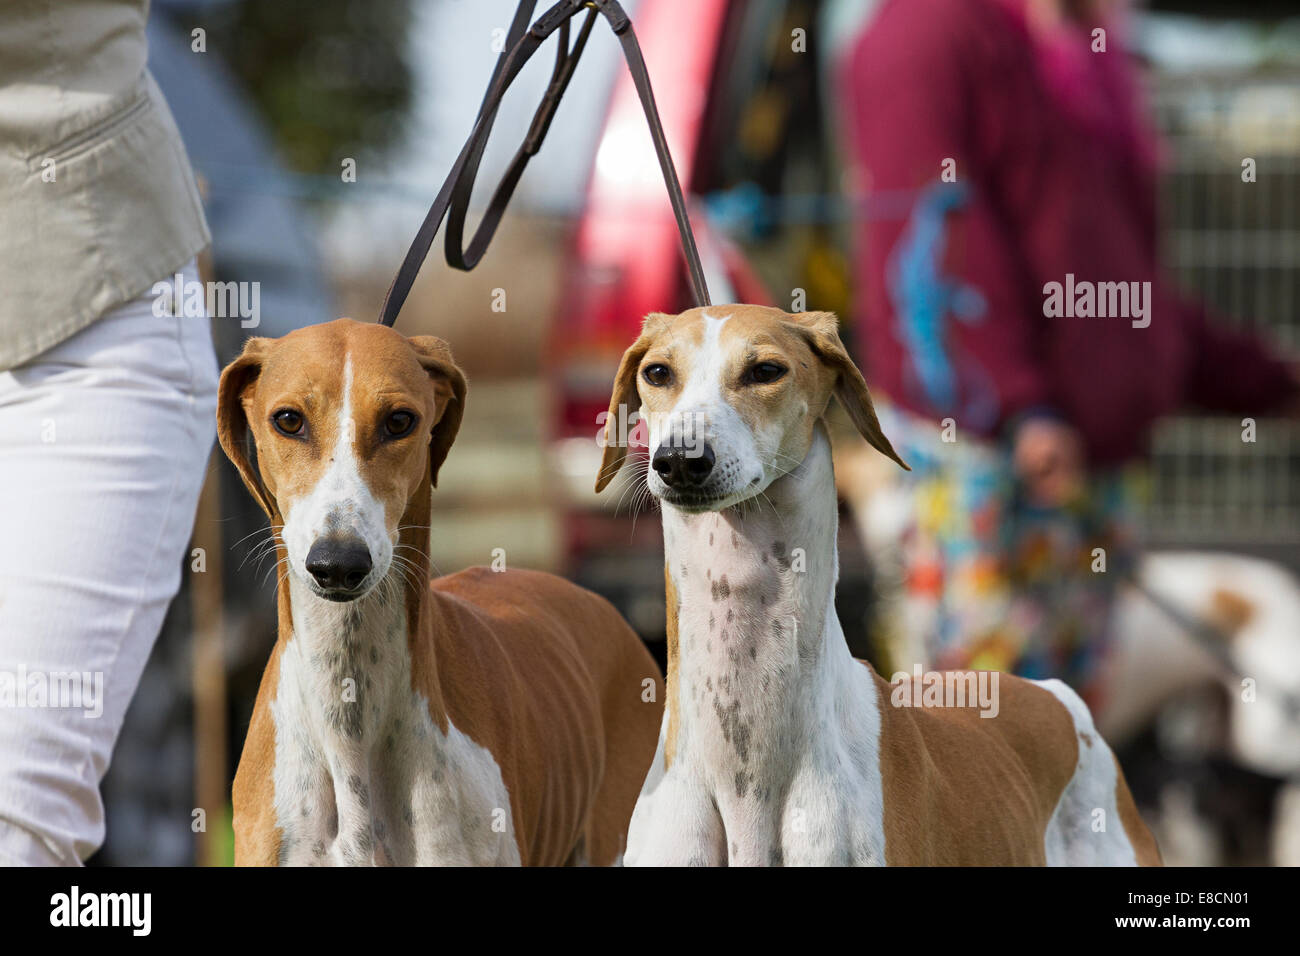 South Wingfield, Derbyshire, UK  5th October 2014  A pair of saluki